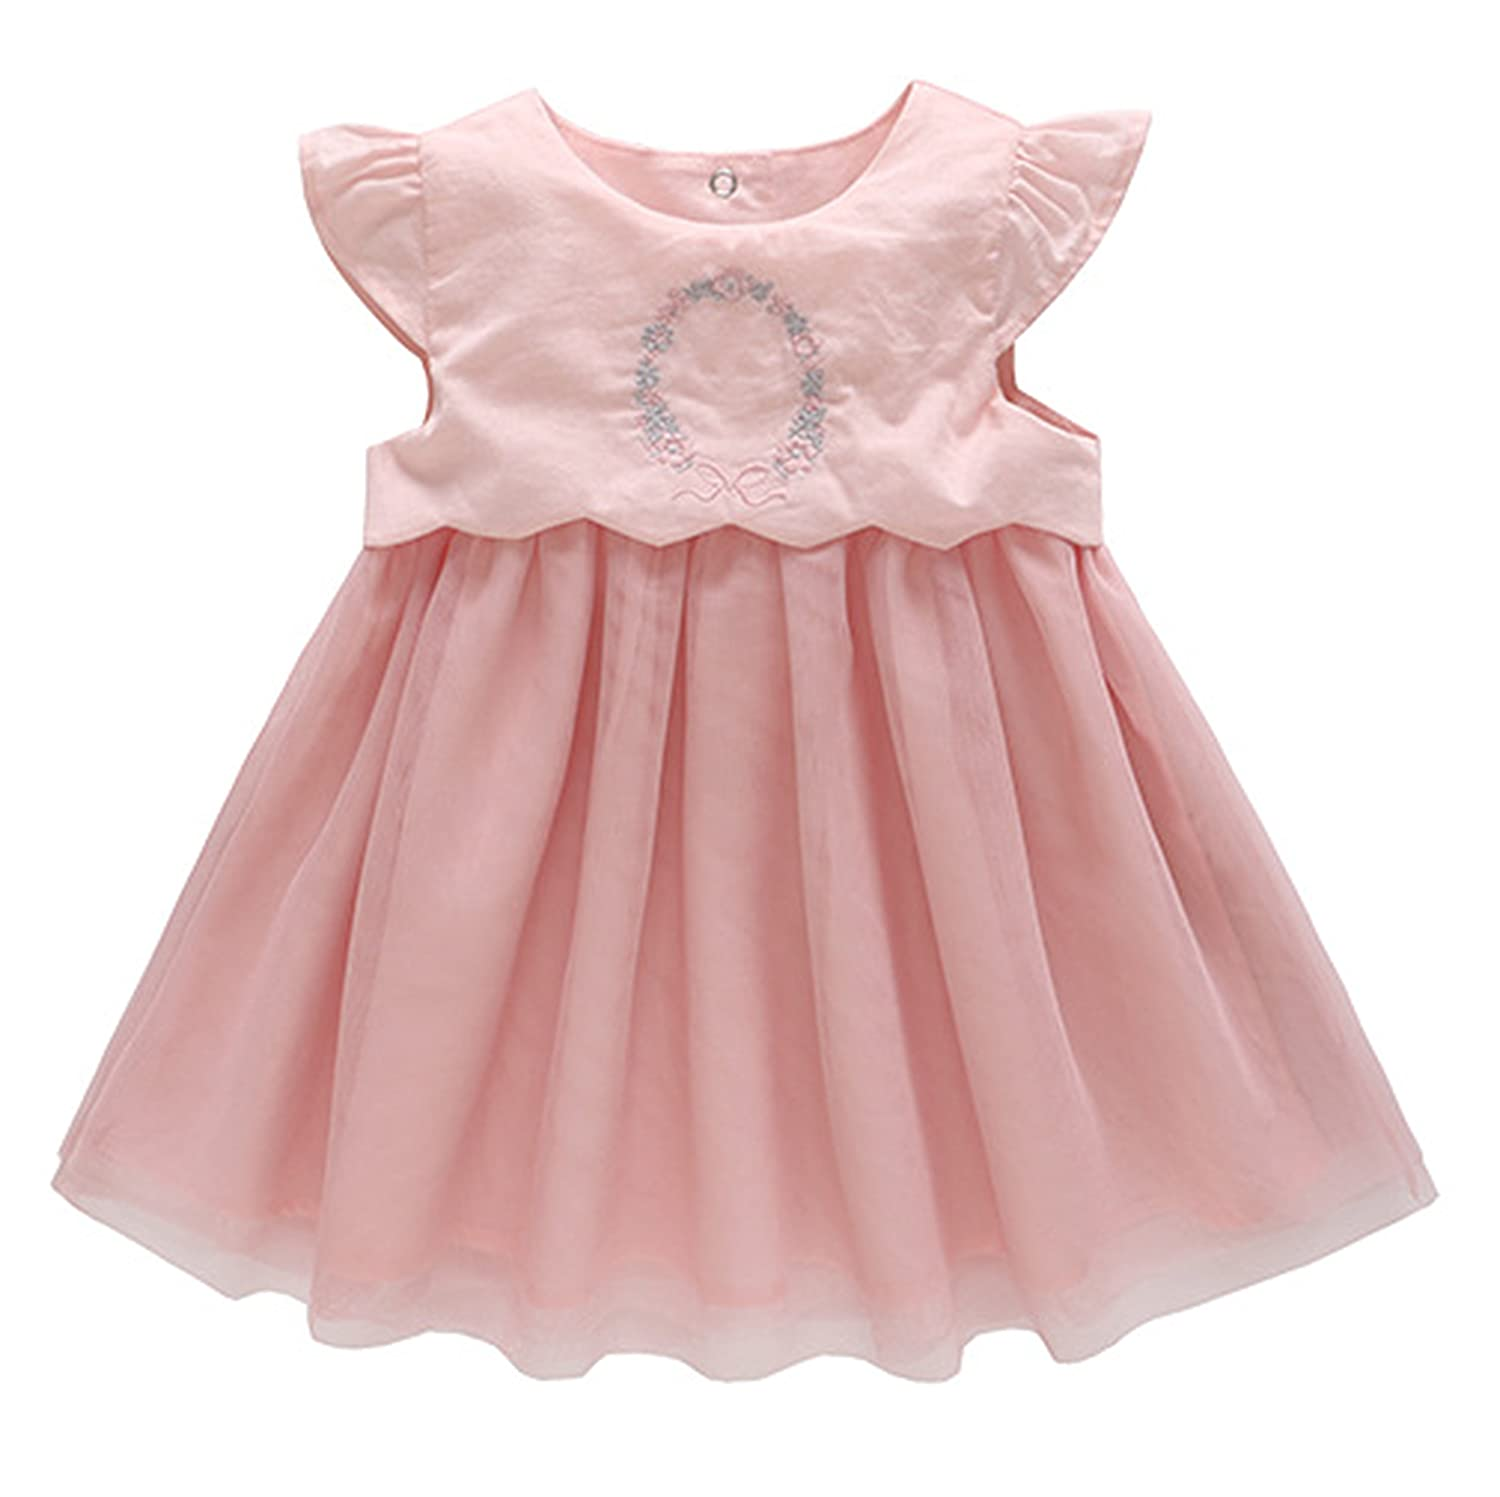 NOMSOCR Infant Baby Gilrs Sleeveless Princess Dress Tulle Tutu Birthday Party Sundress